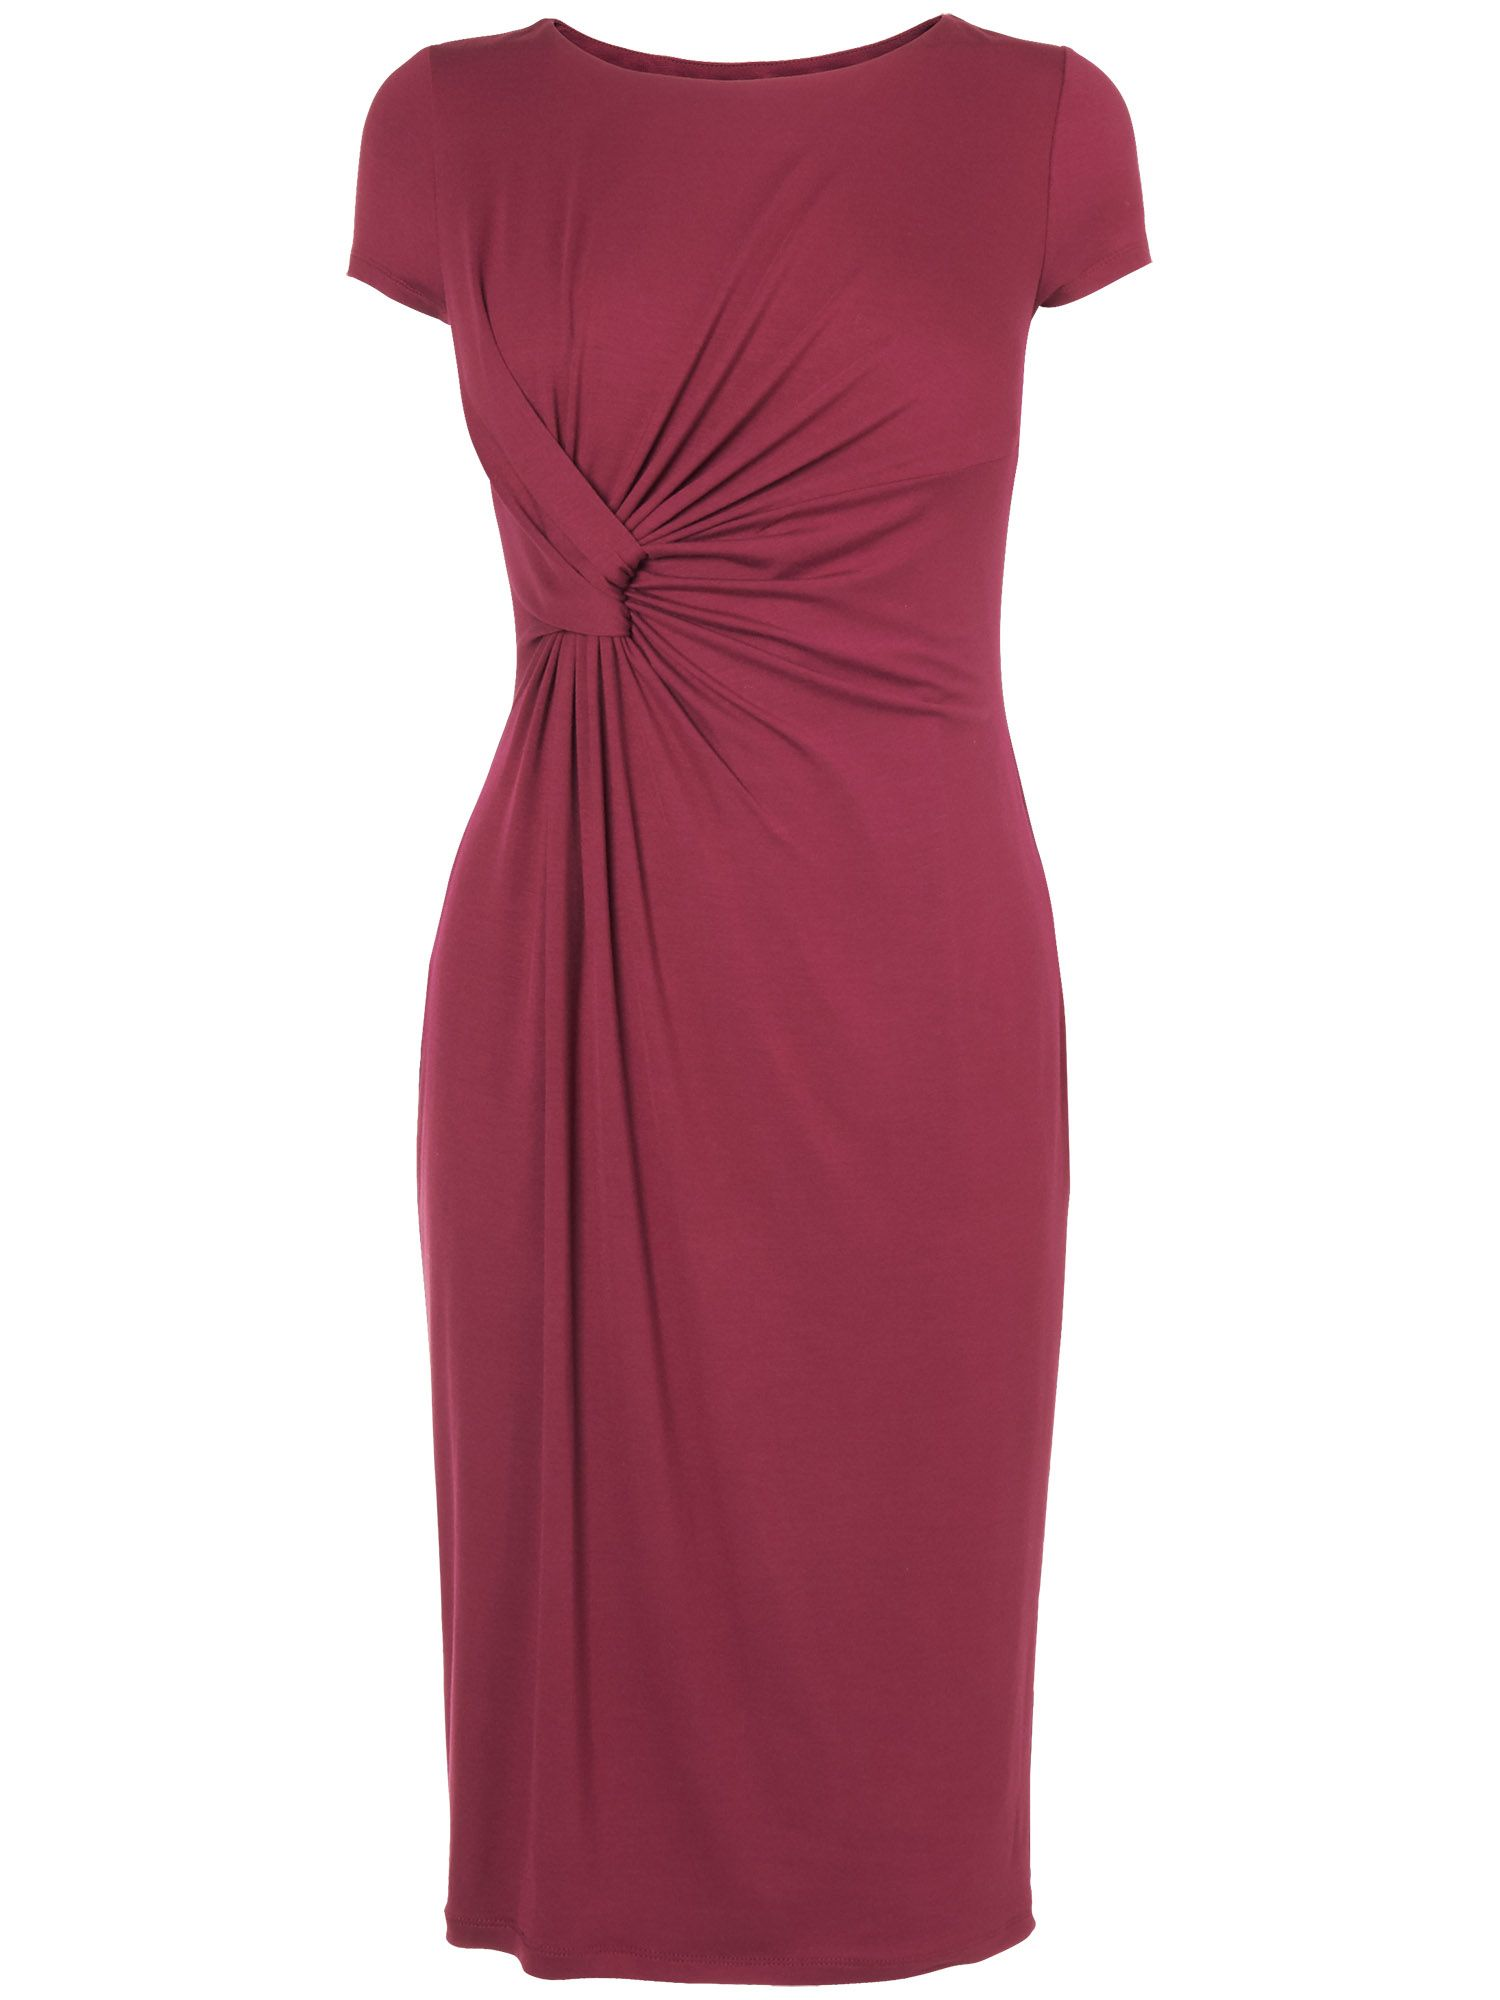 Clarissa twist dress